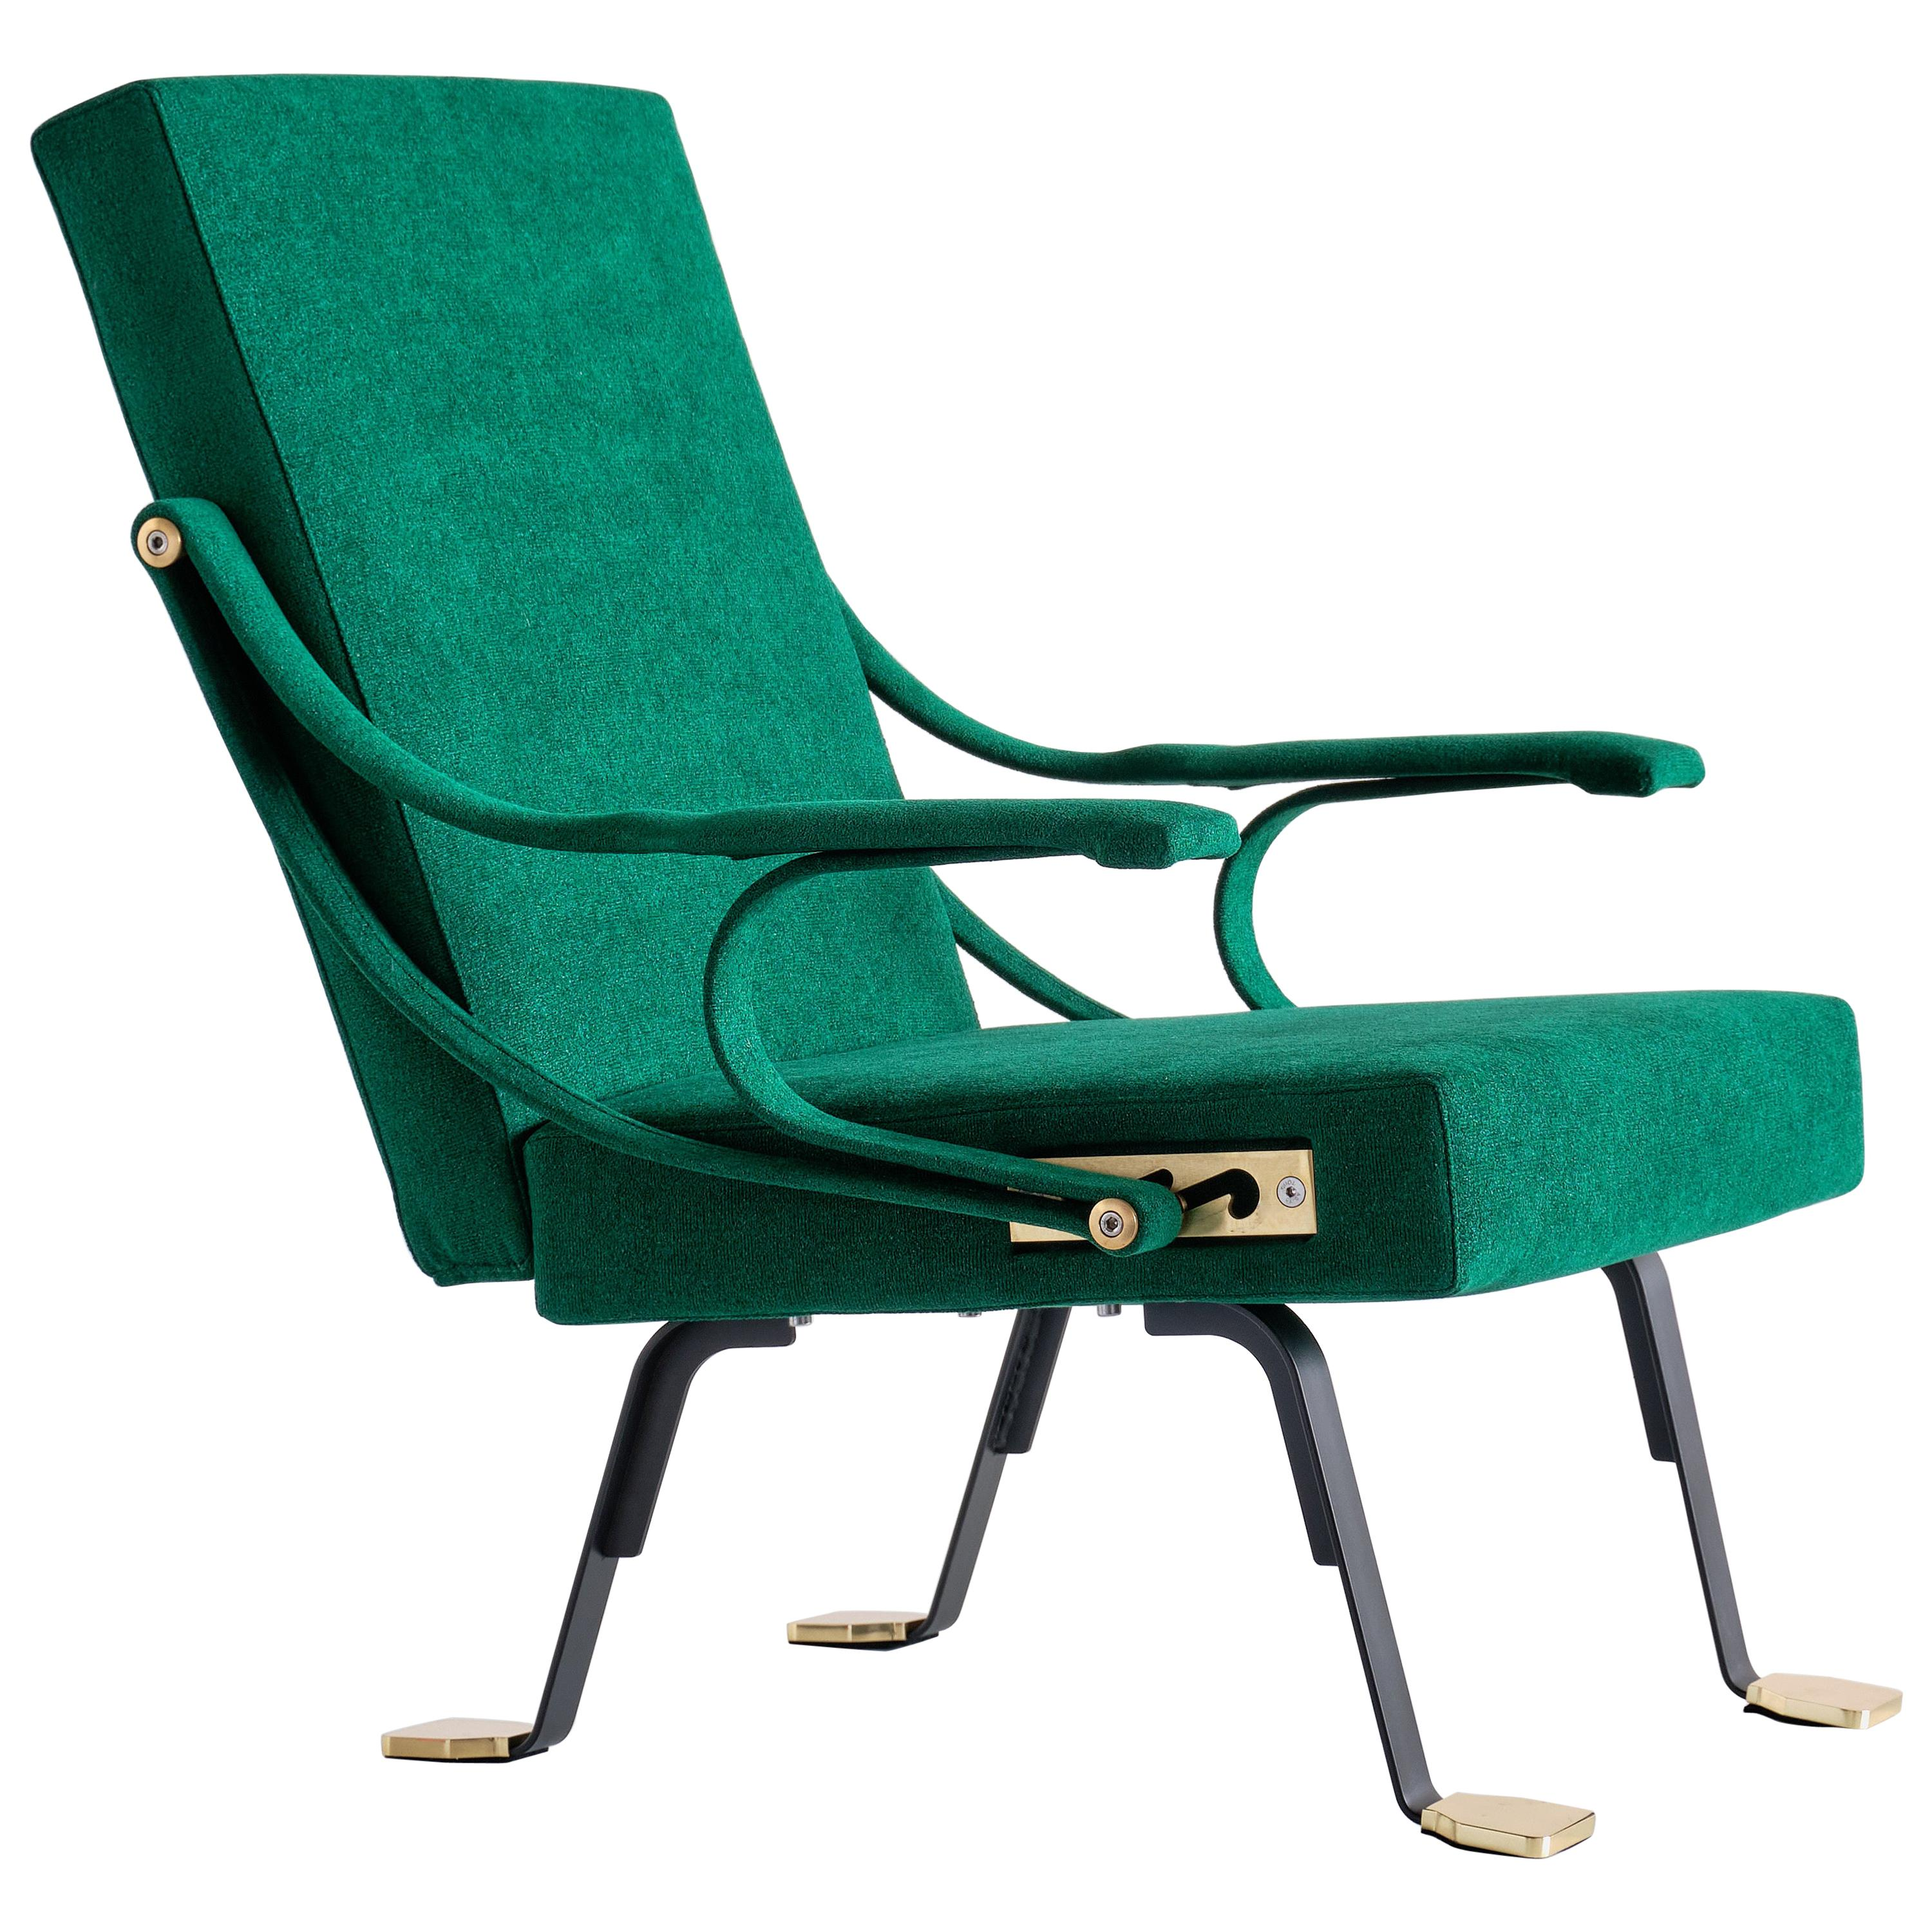 Ignazio Gardella 'Digamma' Armchair in Emerald Green Lelièvre Fabric and Brass